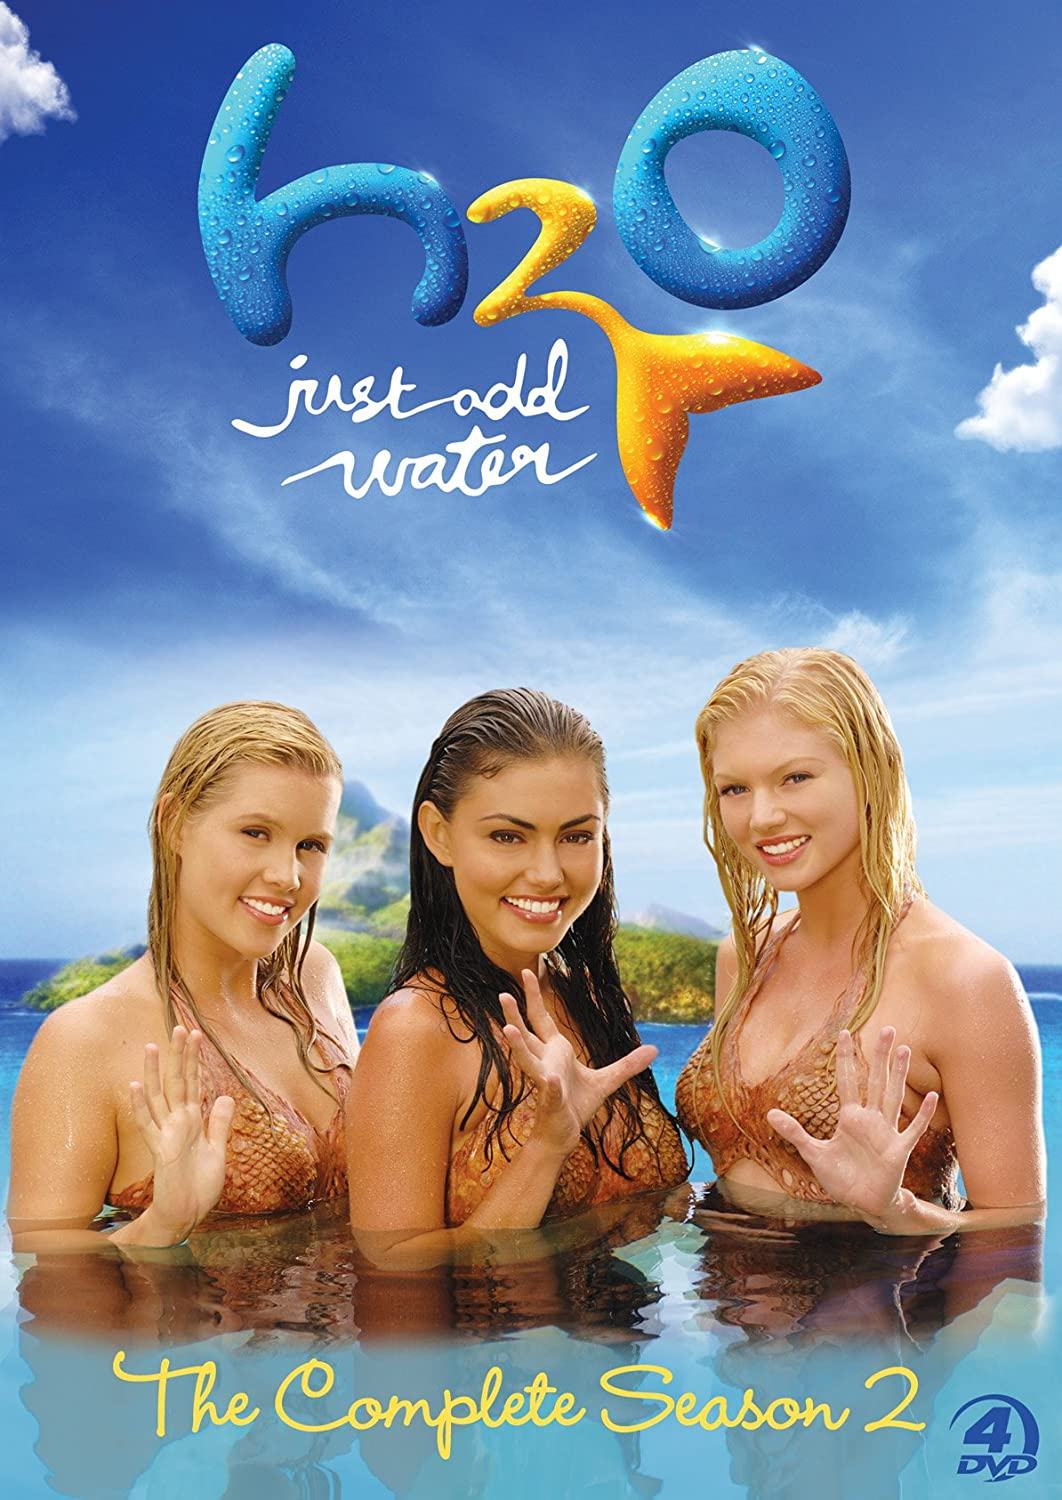 H2o: Just Add Water - The Complete Season 2 Reino Unido DVD: Amazon.es: Cine y Series TV